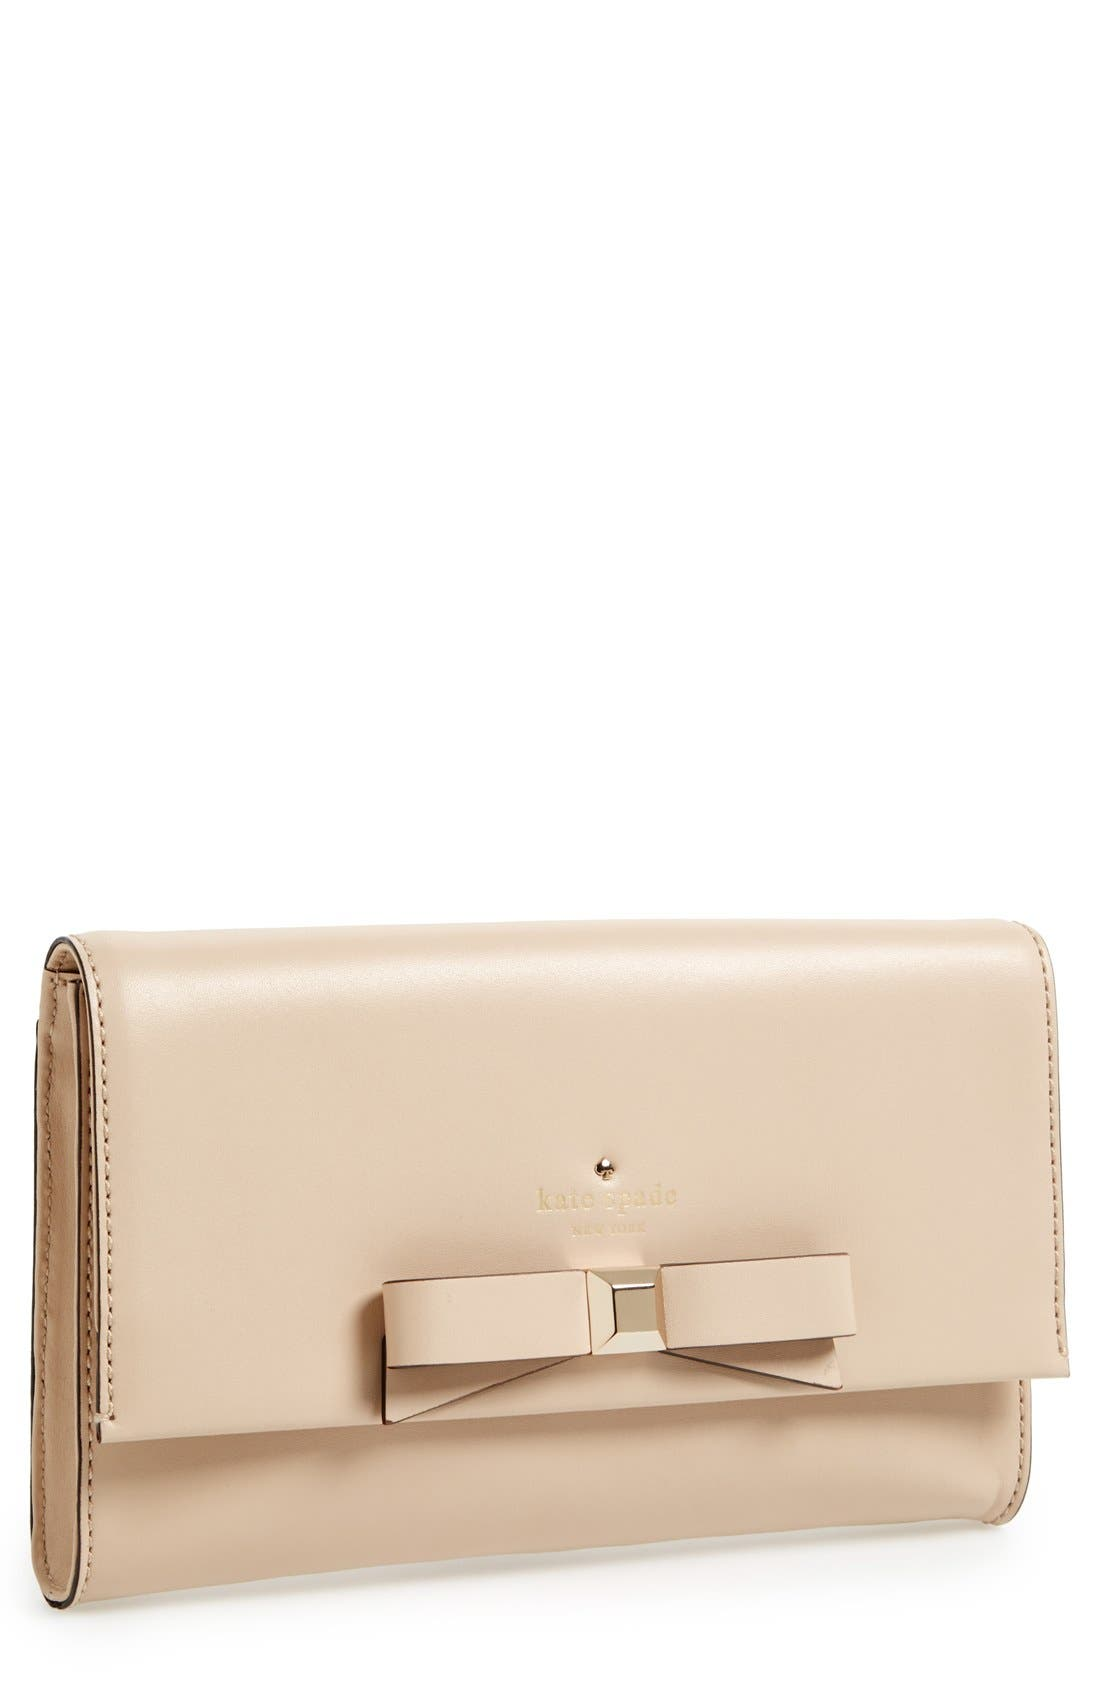 Main Image - kate spade new york 'holly street - remi' clutch